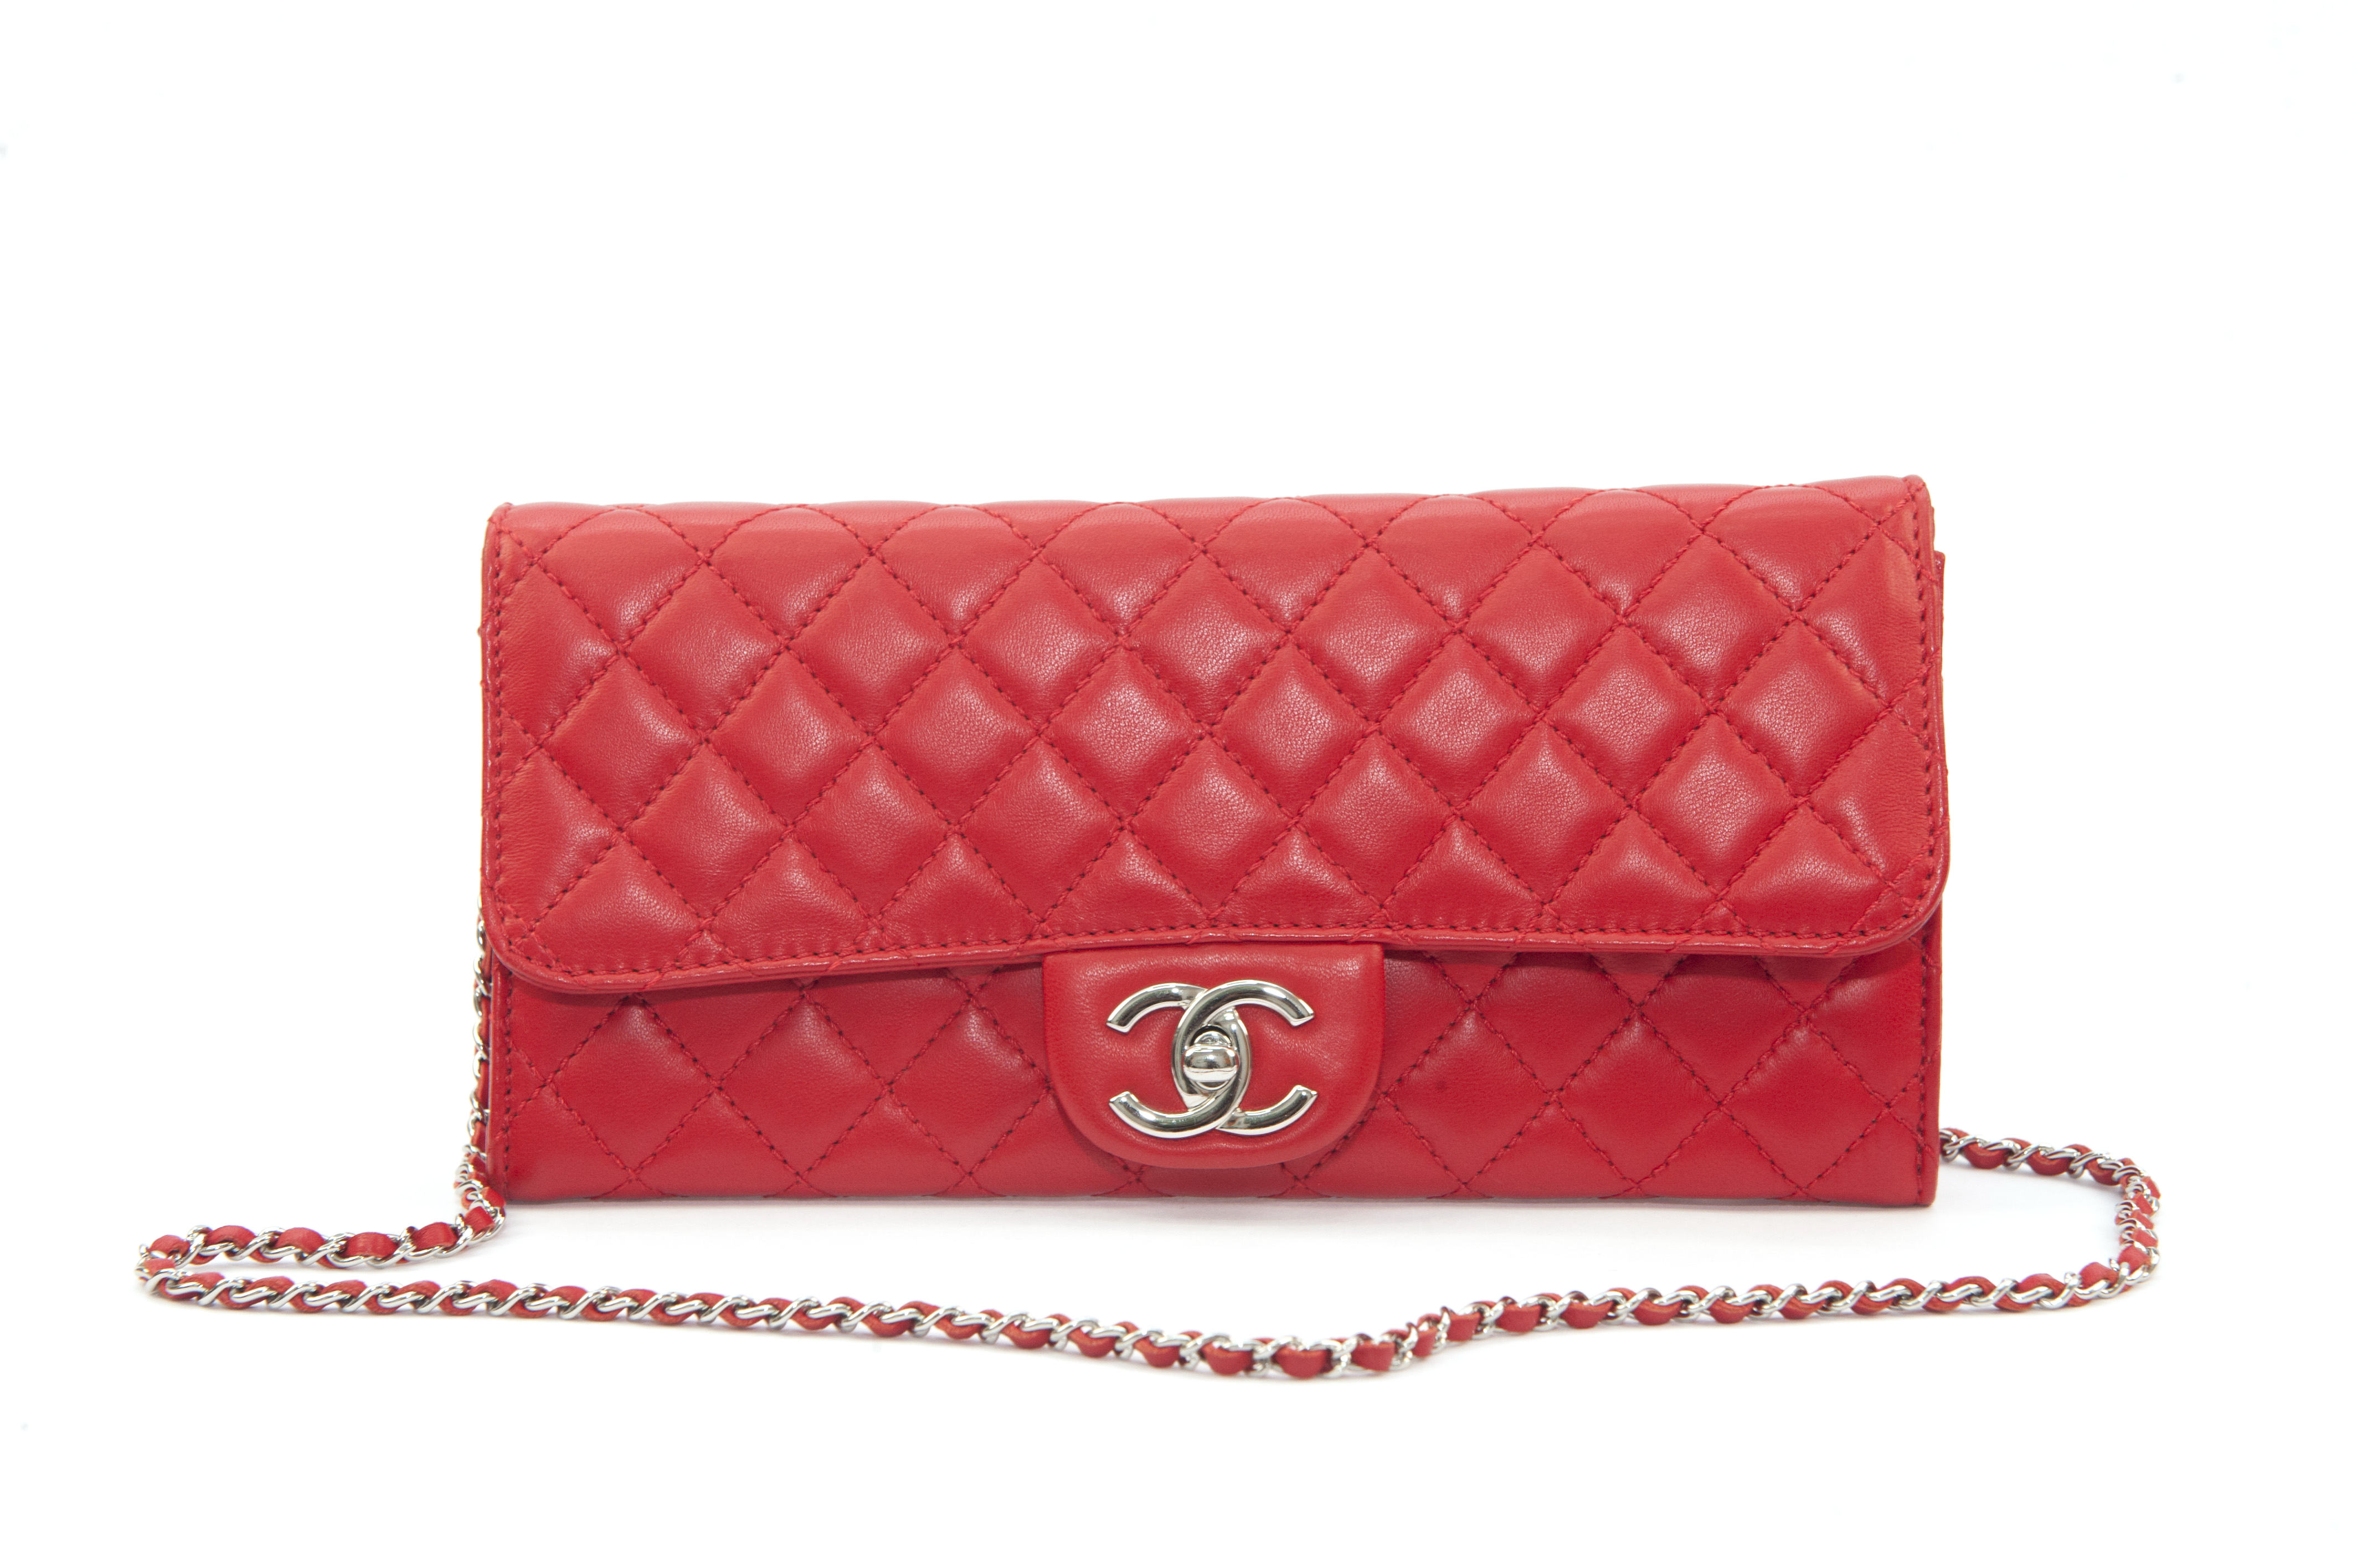 9236897e27e2 Chanel Timeless Bag Authentic Red Lambskin Leather